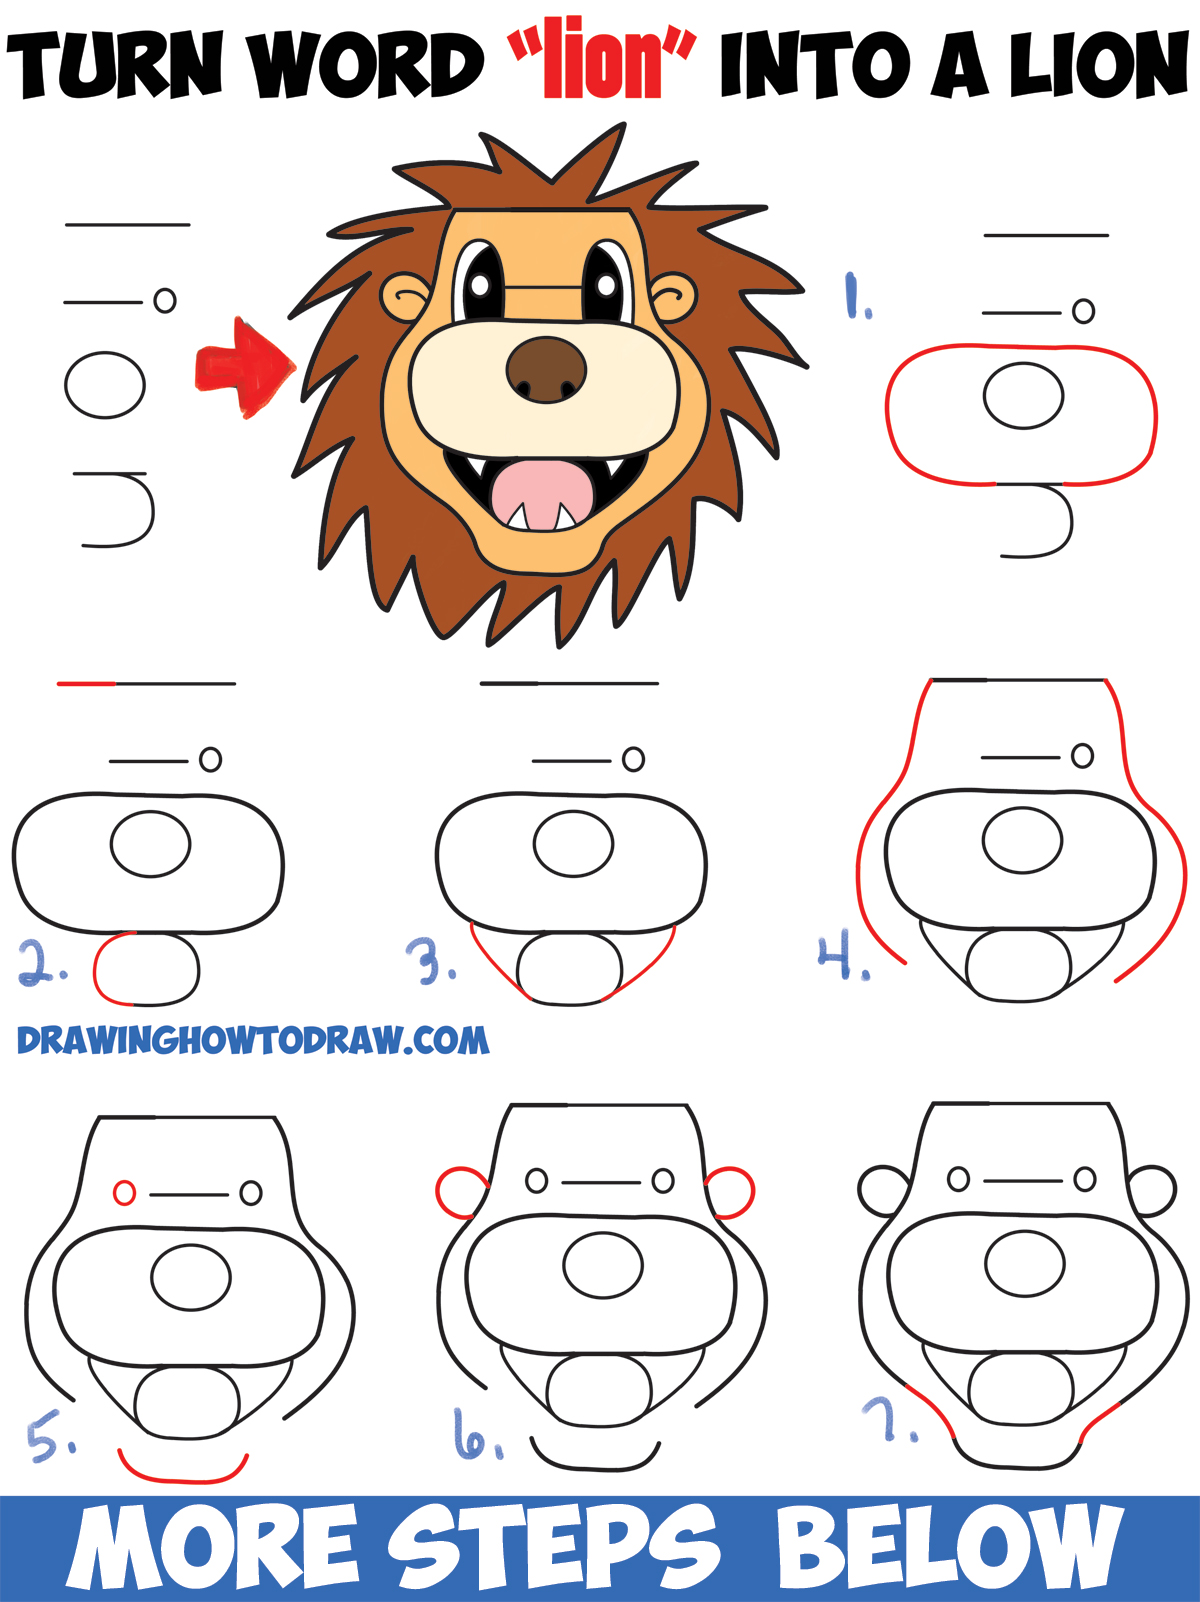 How To Turn The Word Lion Into A Cartoon Lion Easy Step By Step